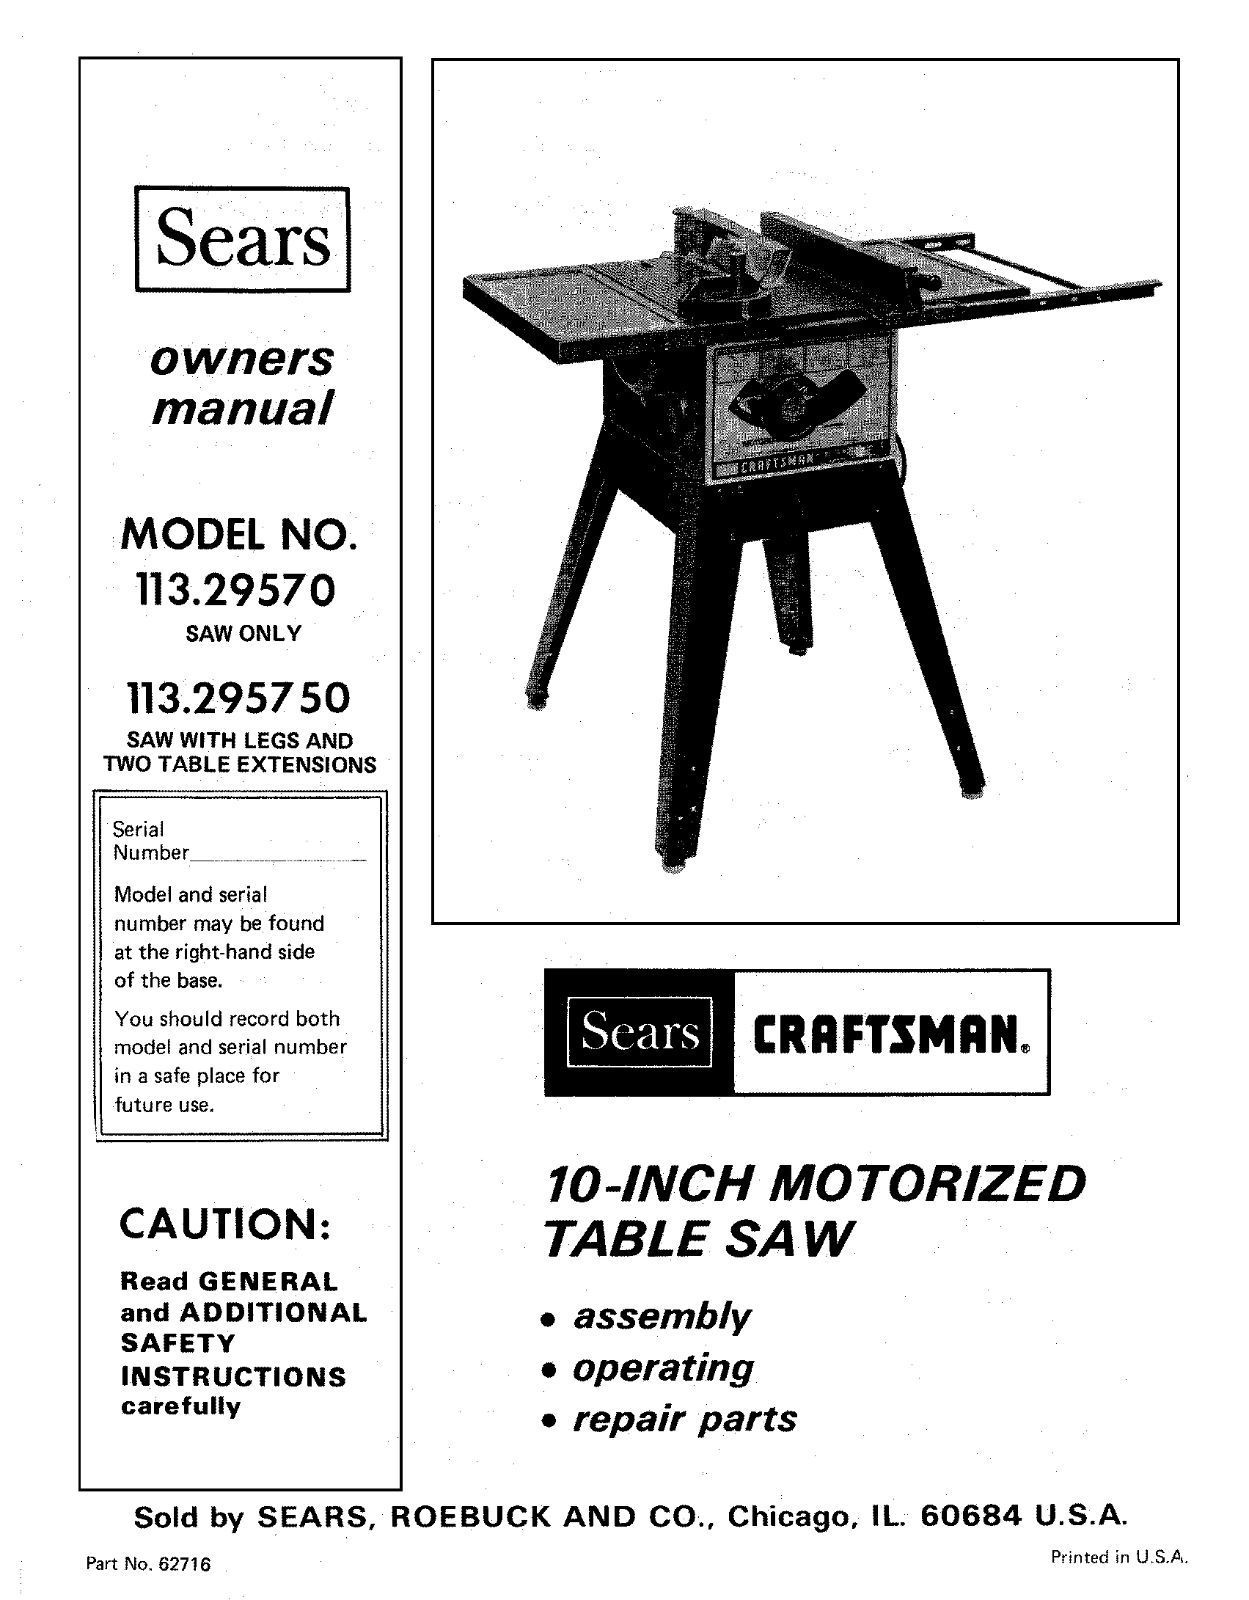 Sears Craftsman Table Saw Manual Model # 152.221140 Home